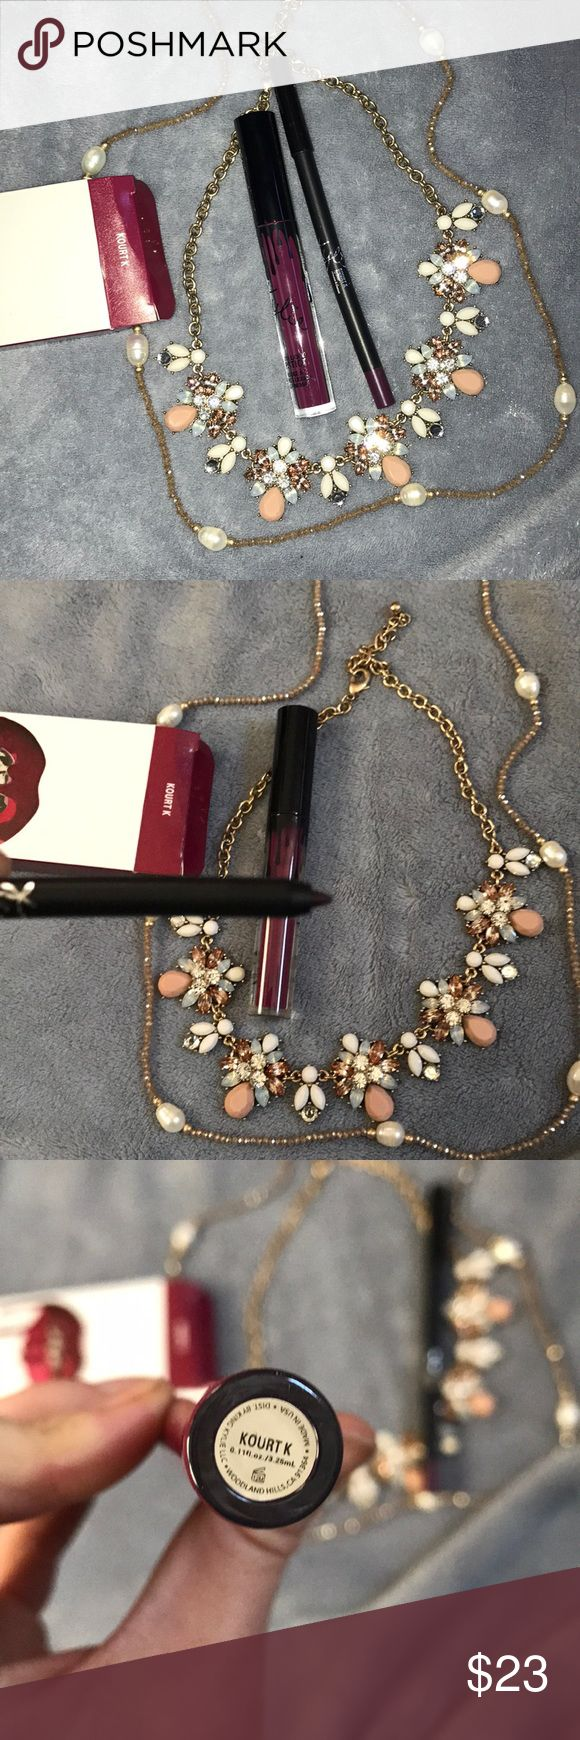 Authentic Kourt K lip kit New and unused everything must go all offers welcome , includes box, lip liner and liquid lip stick. Help me clear my closet out!! Closing on January 31st! Kylie Cosmetics Makeup